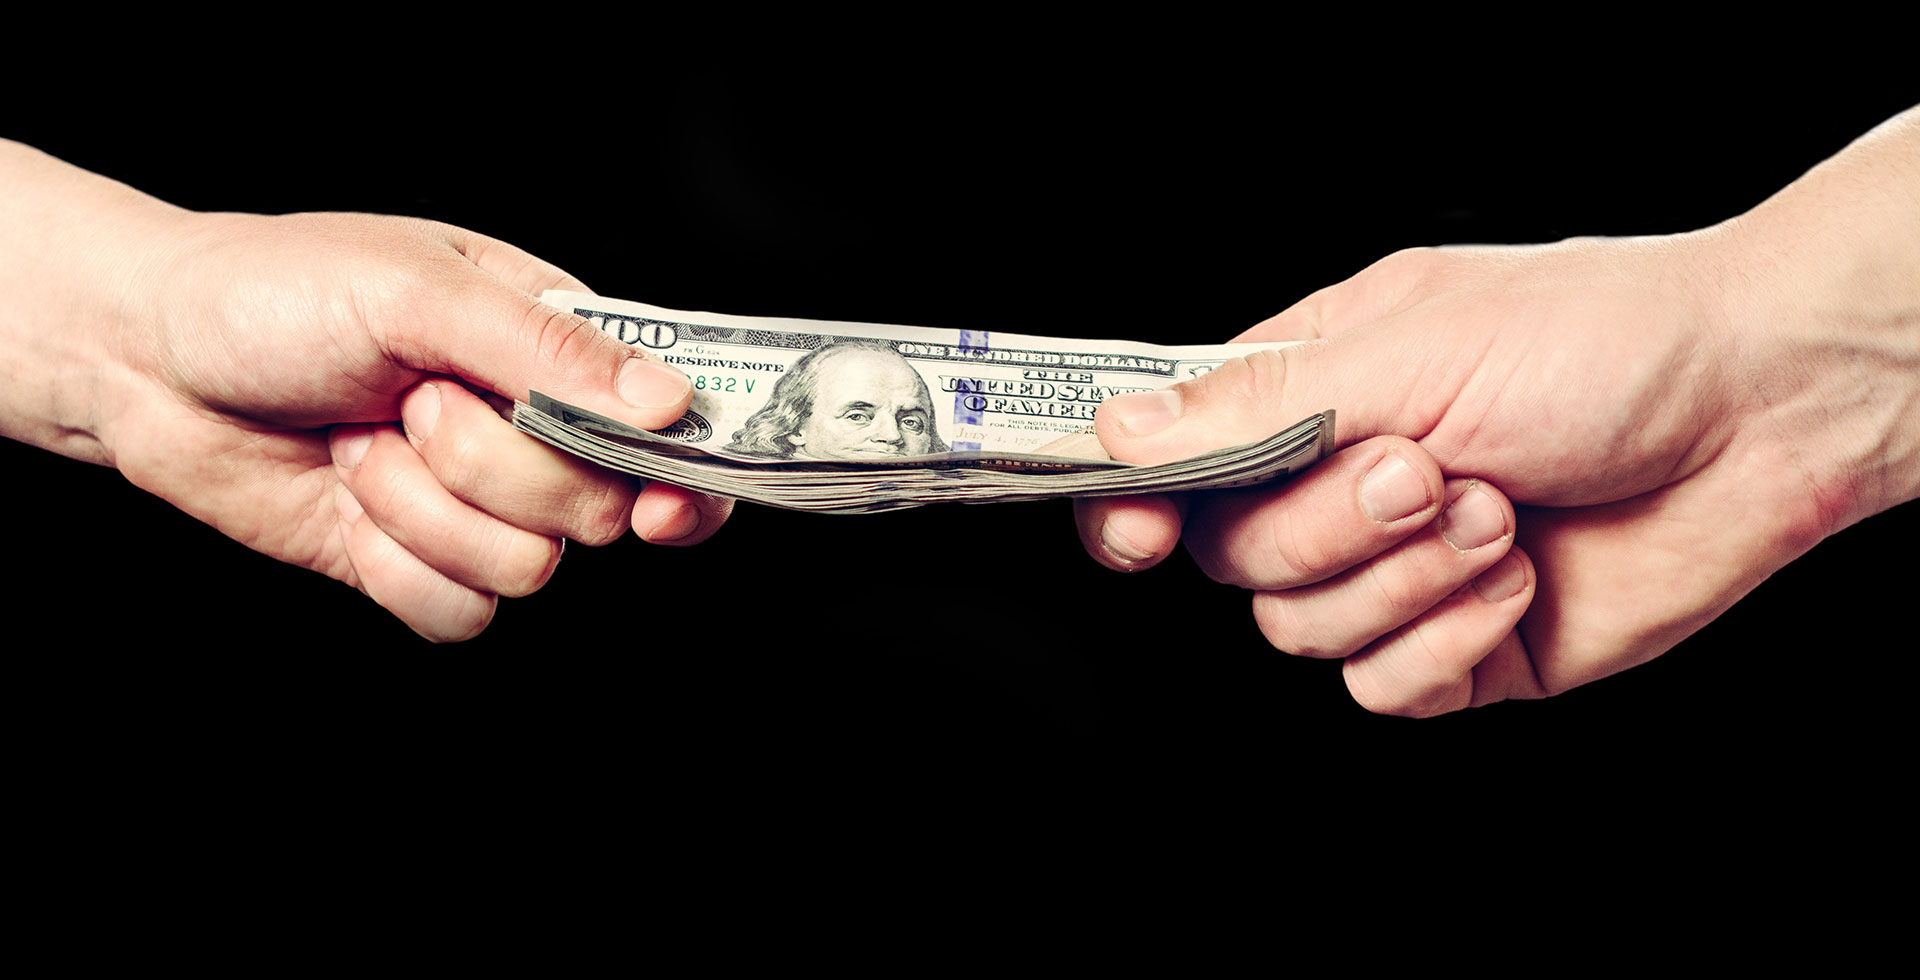 Don't Fall for Bail Bond Scams